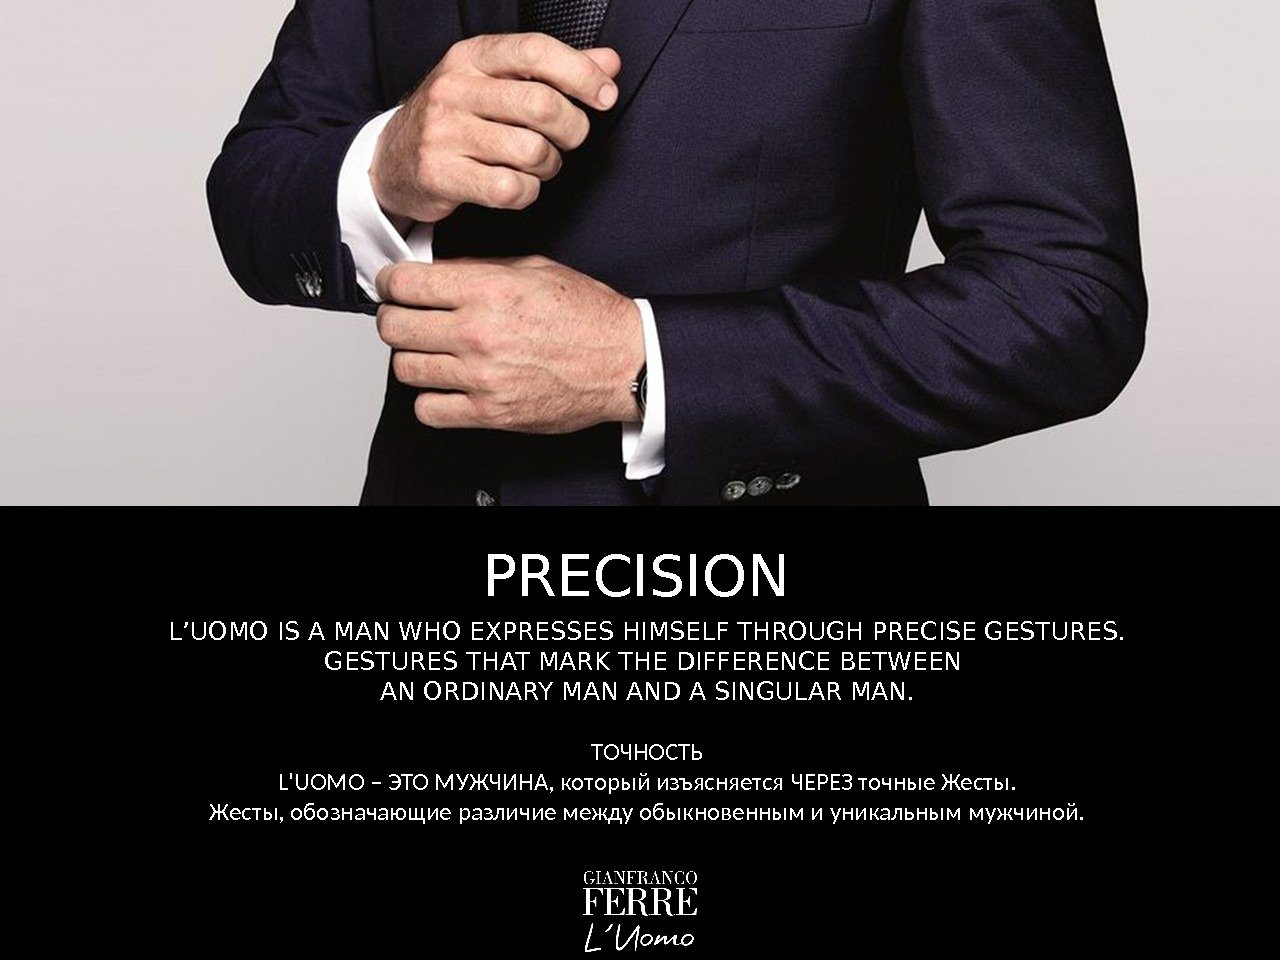 L'UOMO IS A MAN WHO EXPRESSES HIMSELF THROUGH PRECISE GESTURES THAT MARK THE DIFFERENCE